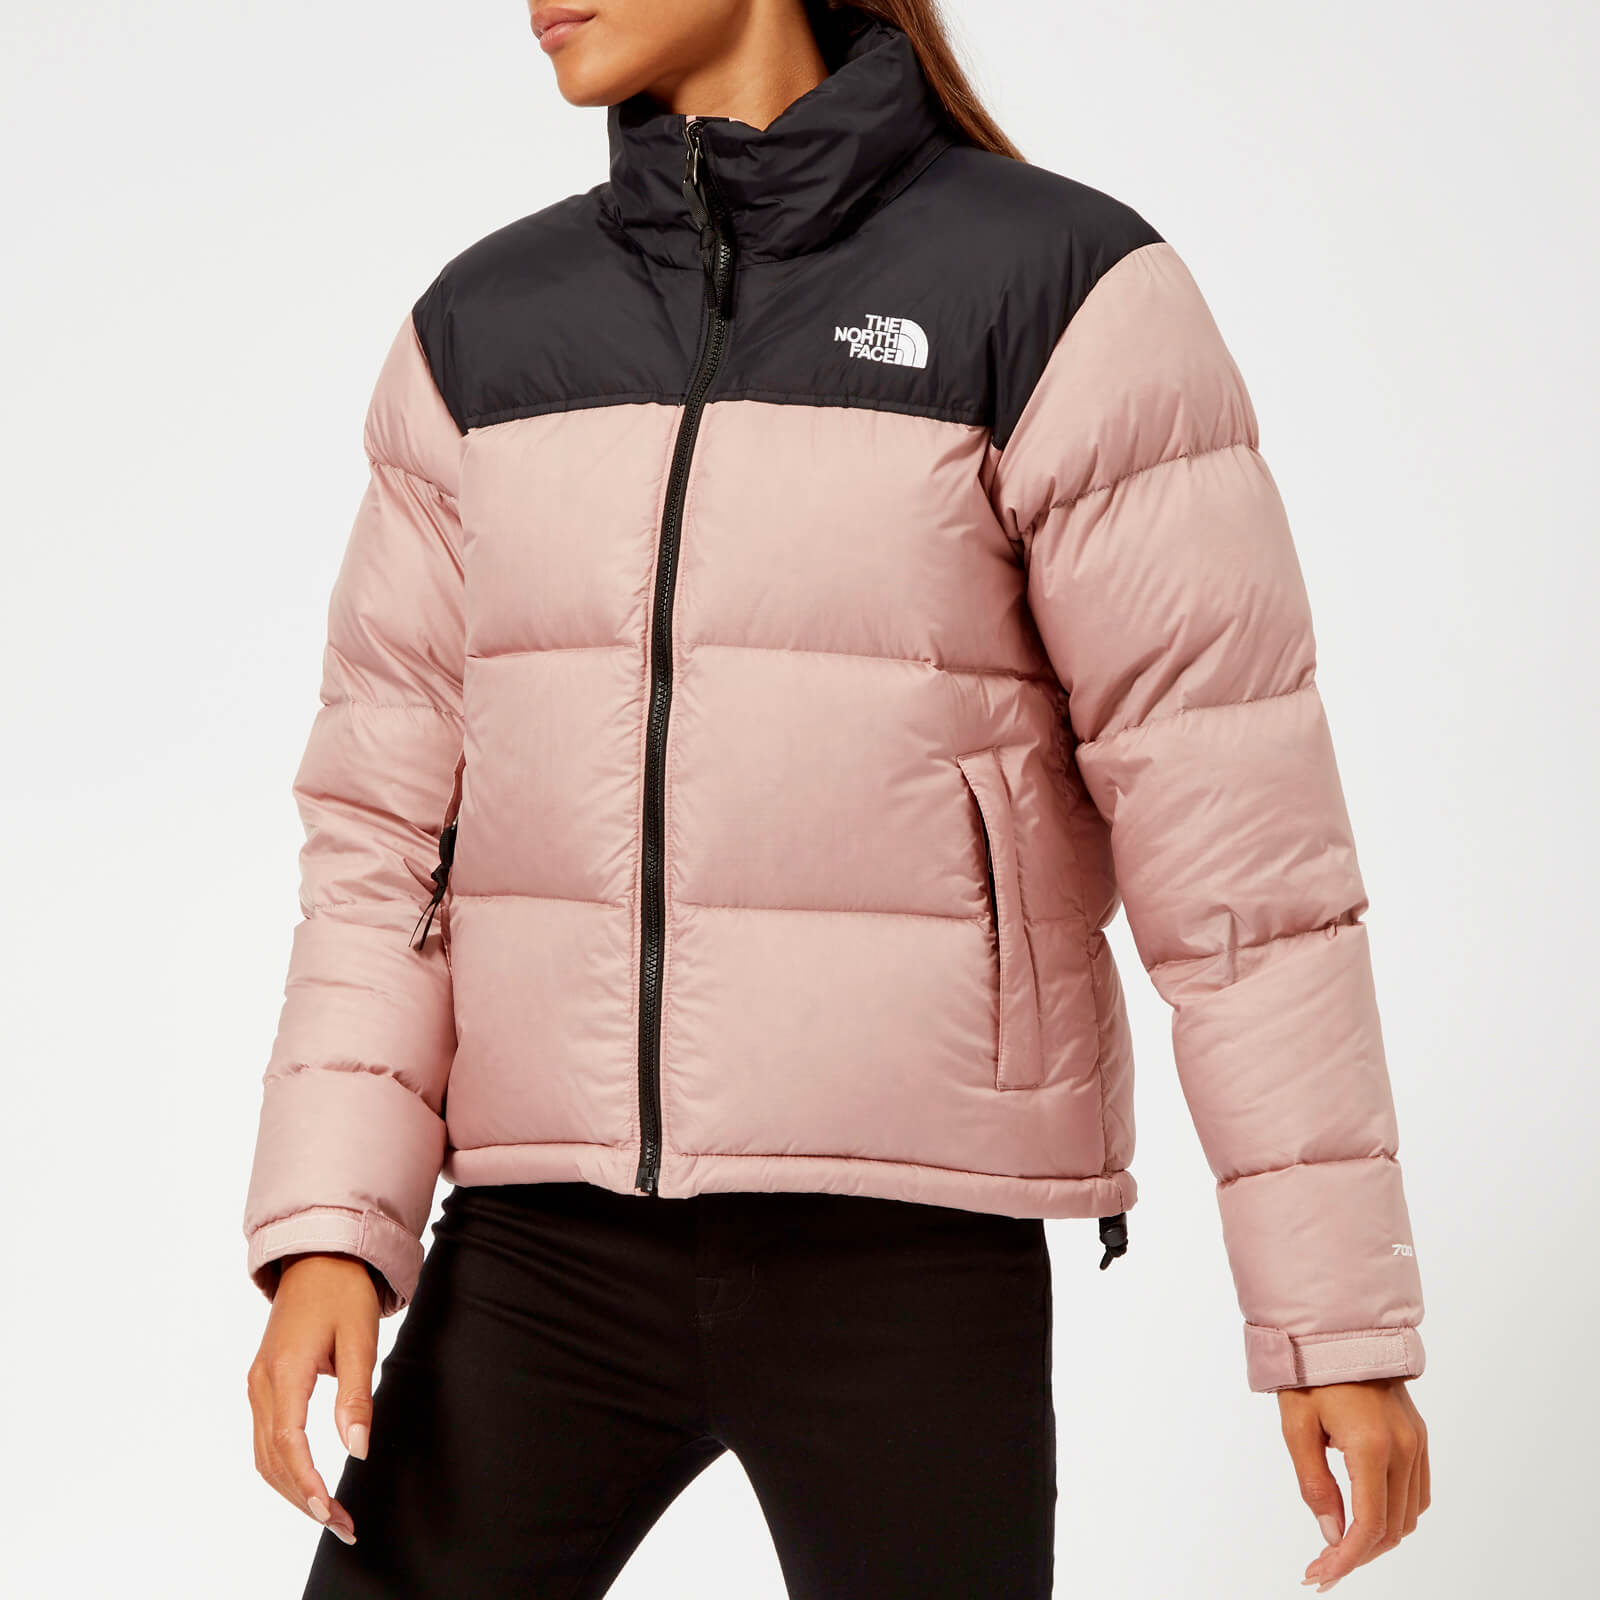 Frisk The North Face Women's 1996 Retro Nuptse Jacket - Misty Rose US-83